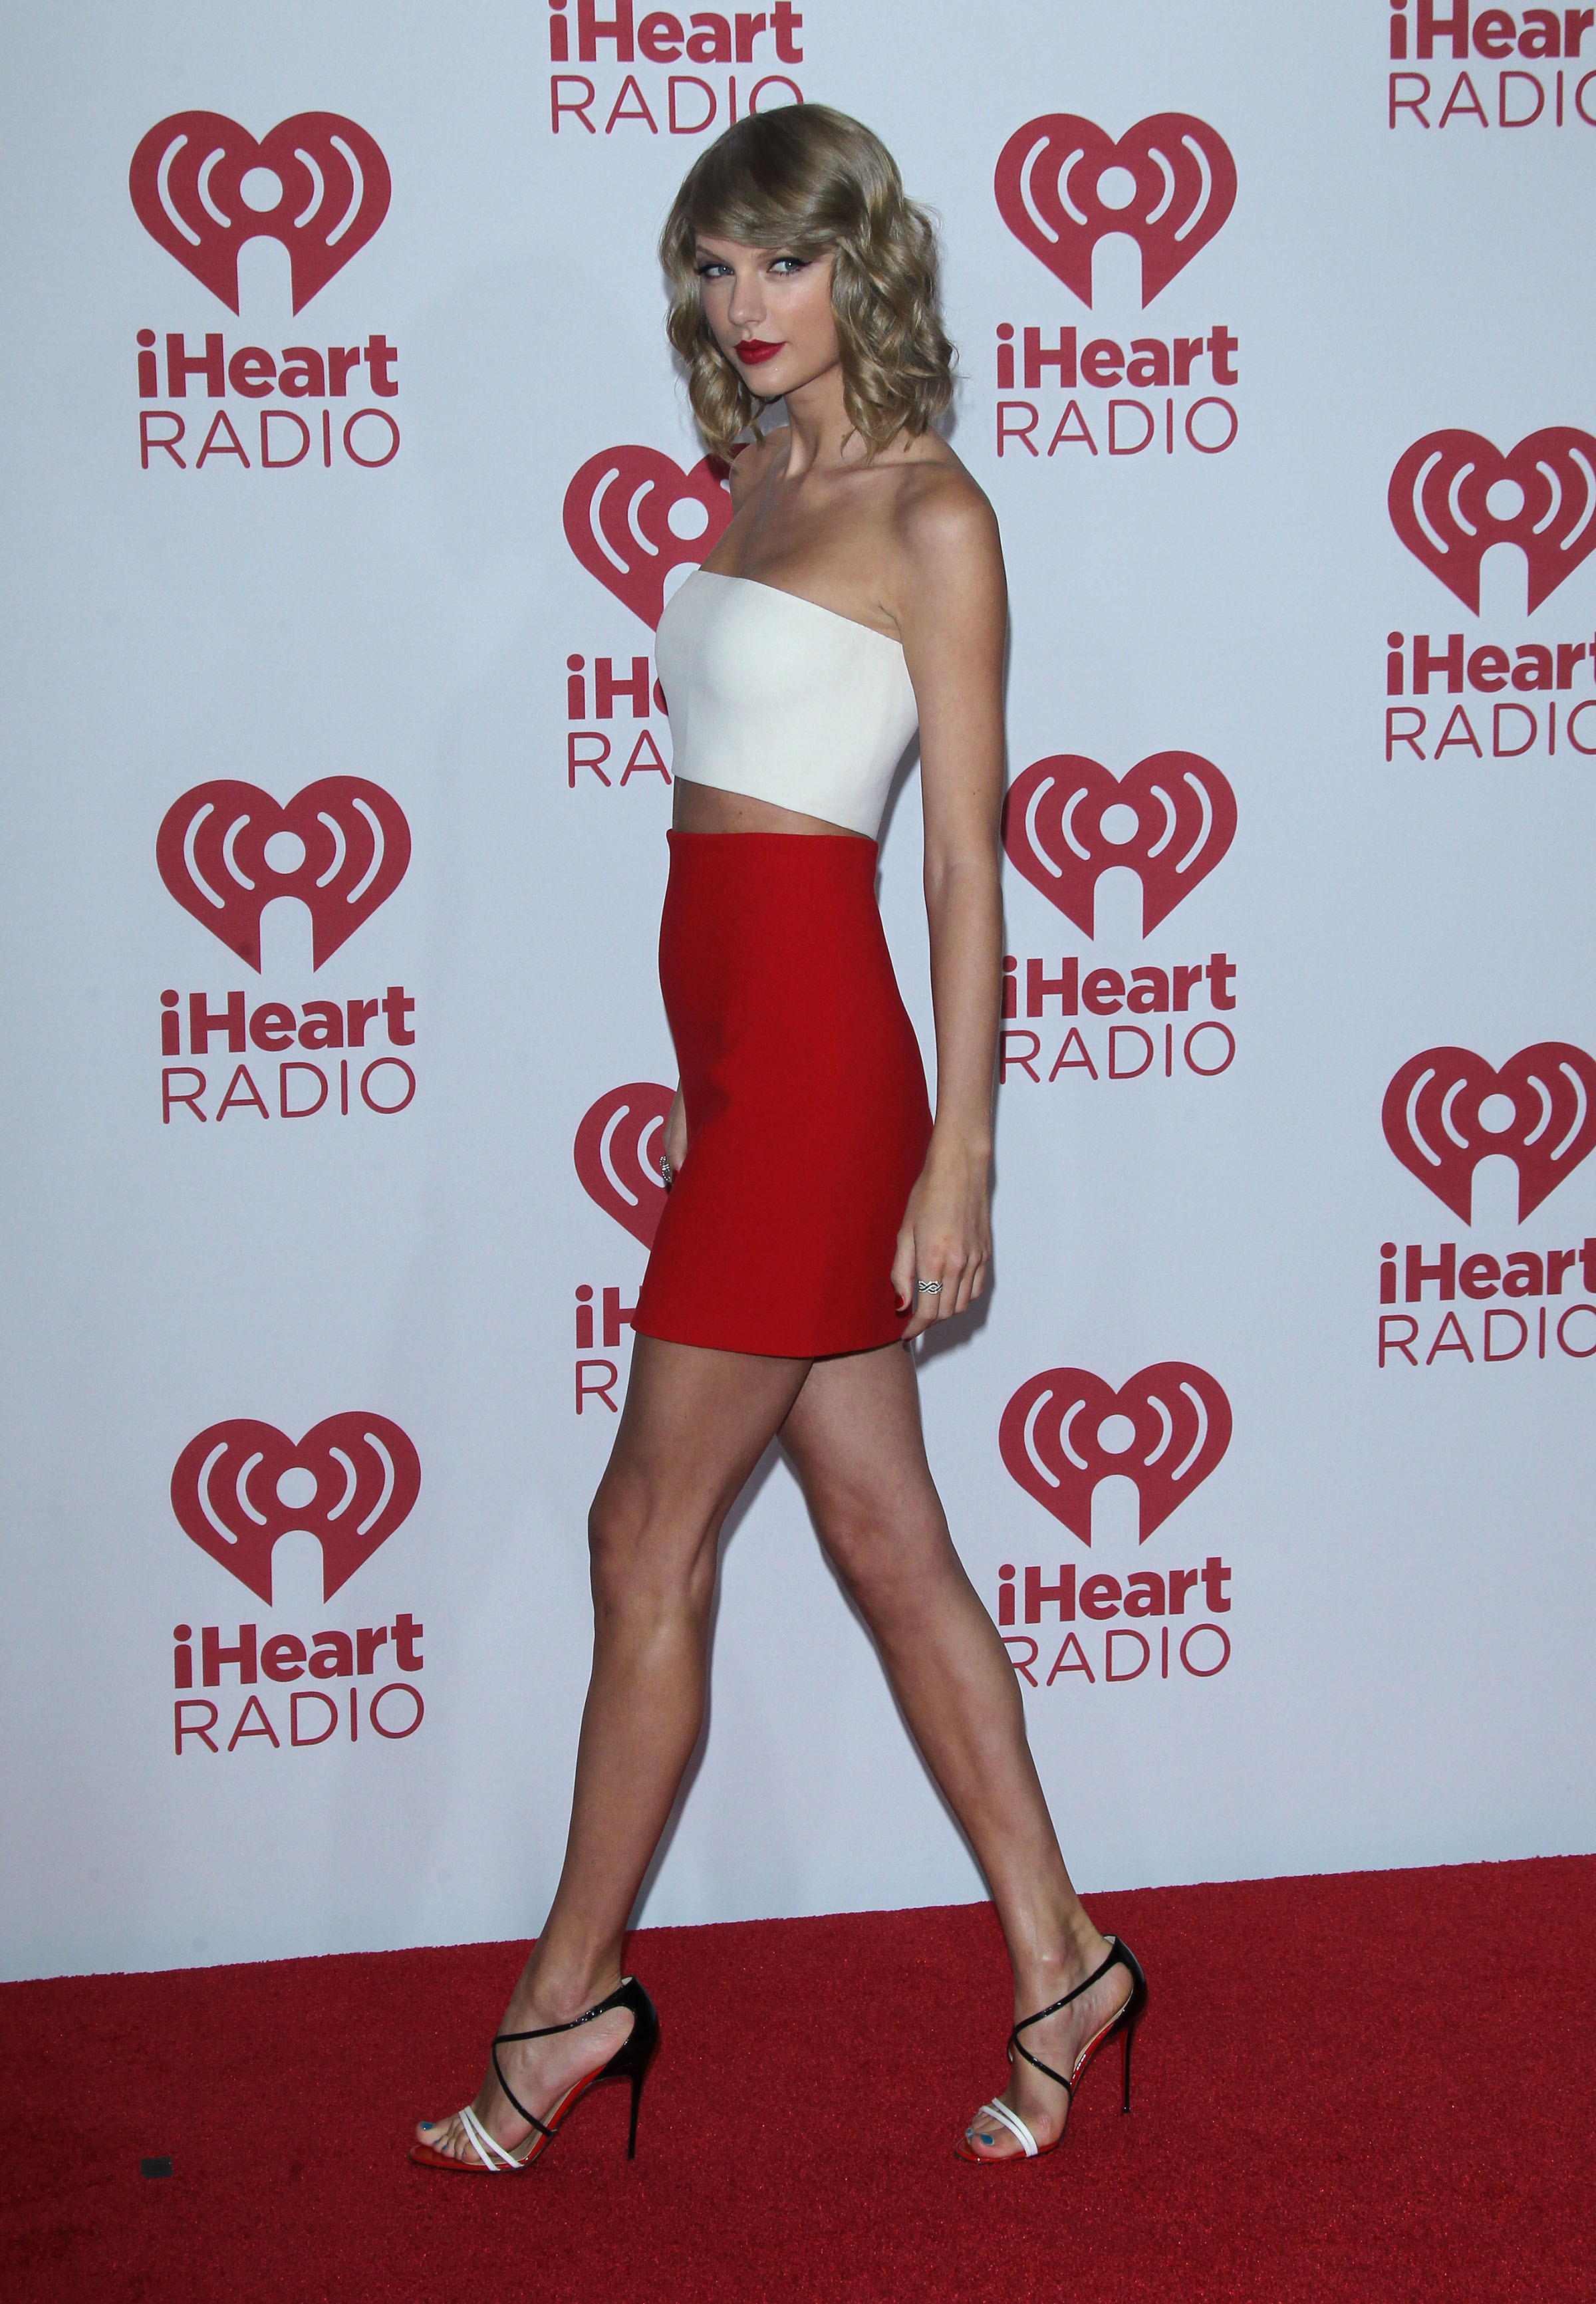 Taylor Swift seen at the IHeartRadio Music Festival in Las Vegas